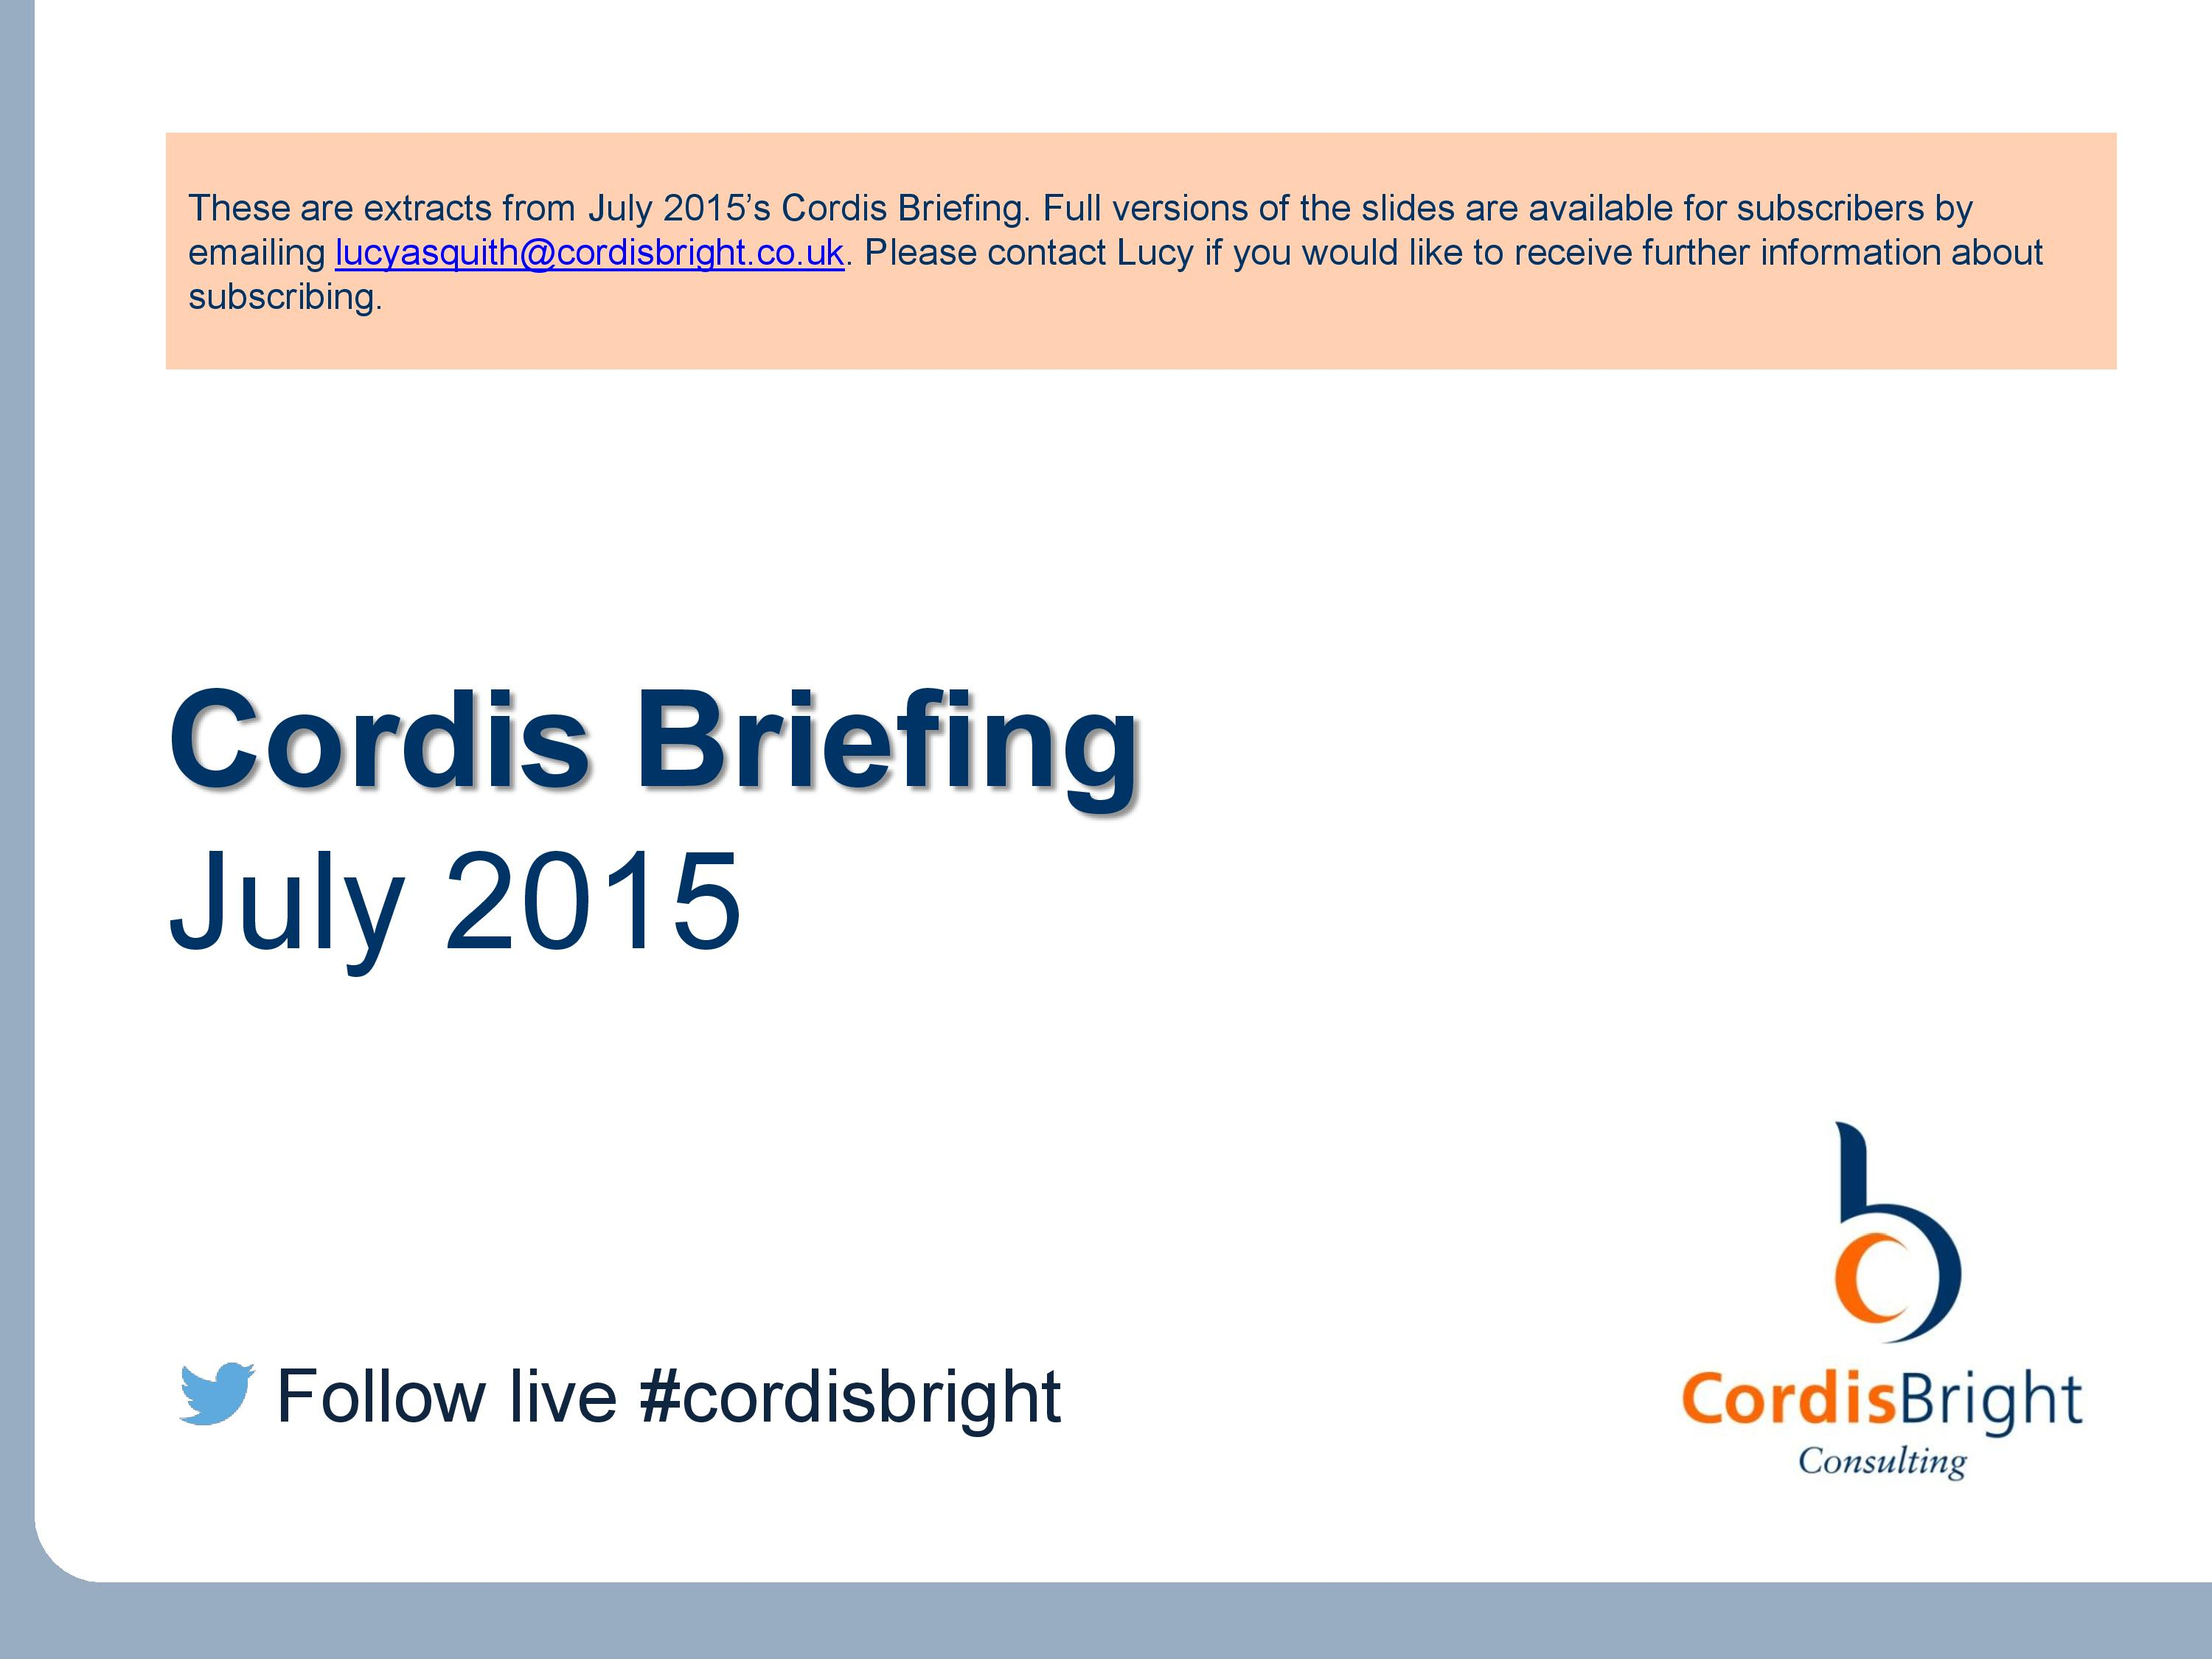 Cordis Briefing: July 2015